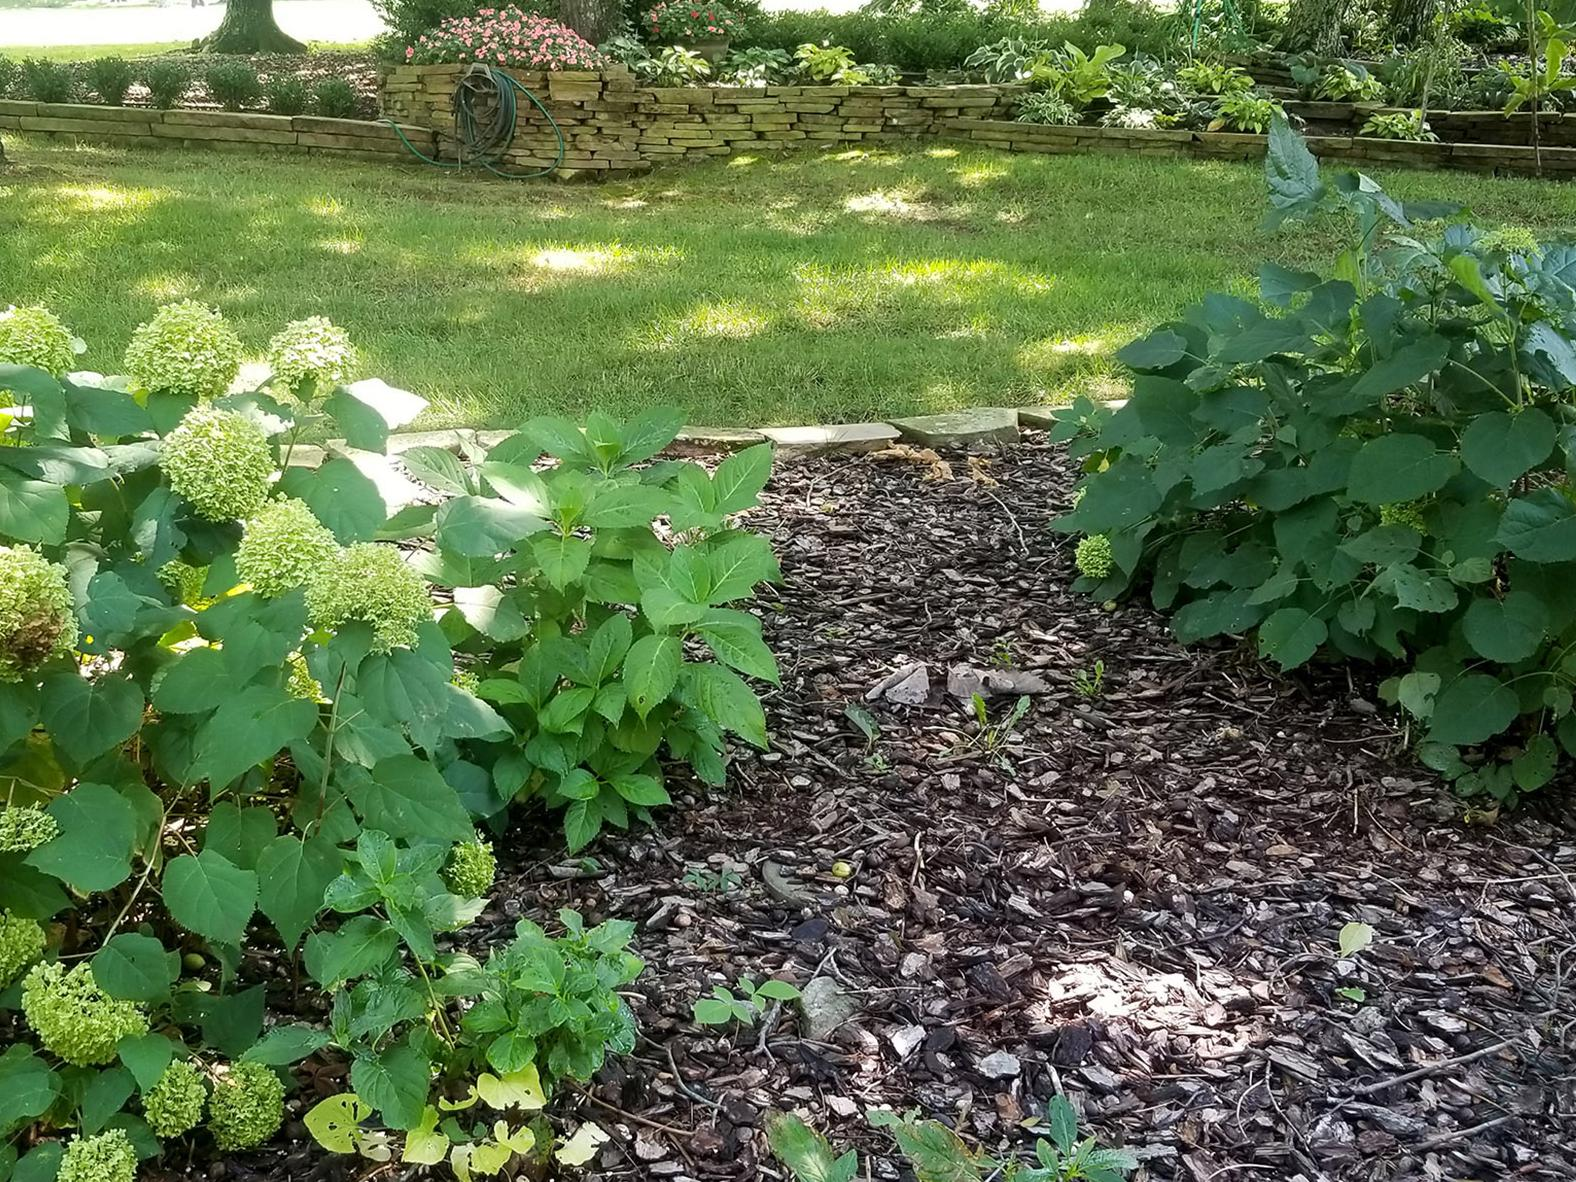 Two hydrangeas are pictured in the foreground of a garden, with one blooming and the smaller one not blooming.